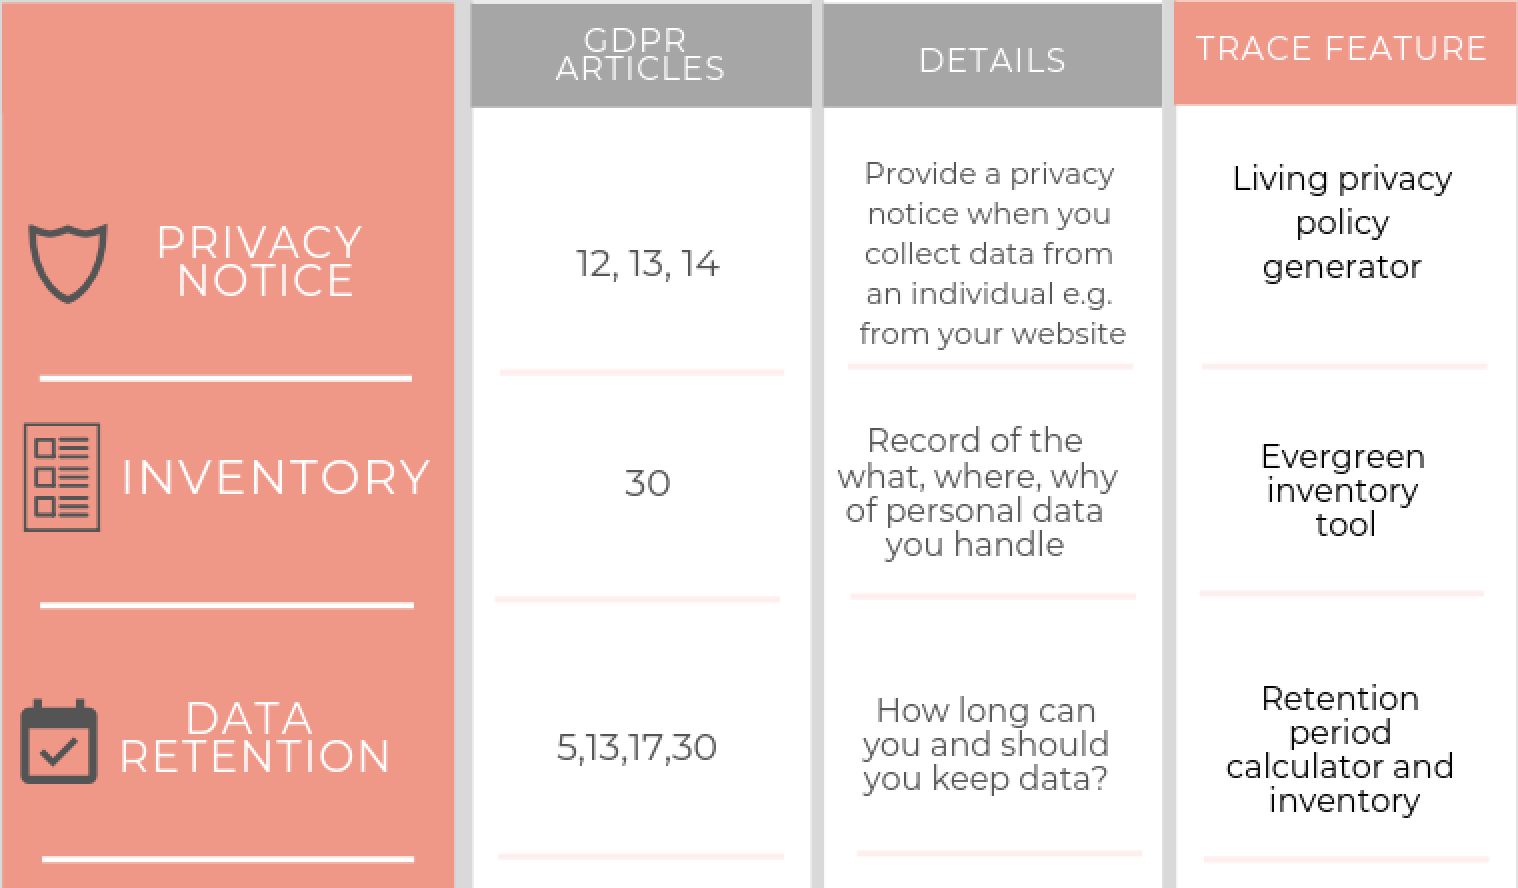 How Trace helps you meet your compliance requirements under GDPR